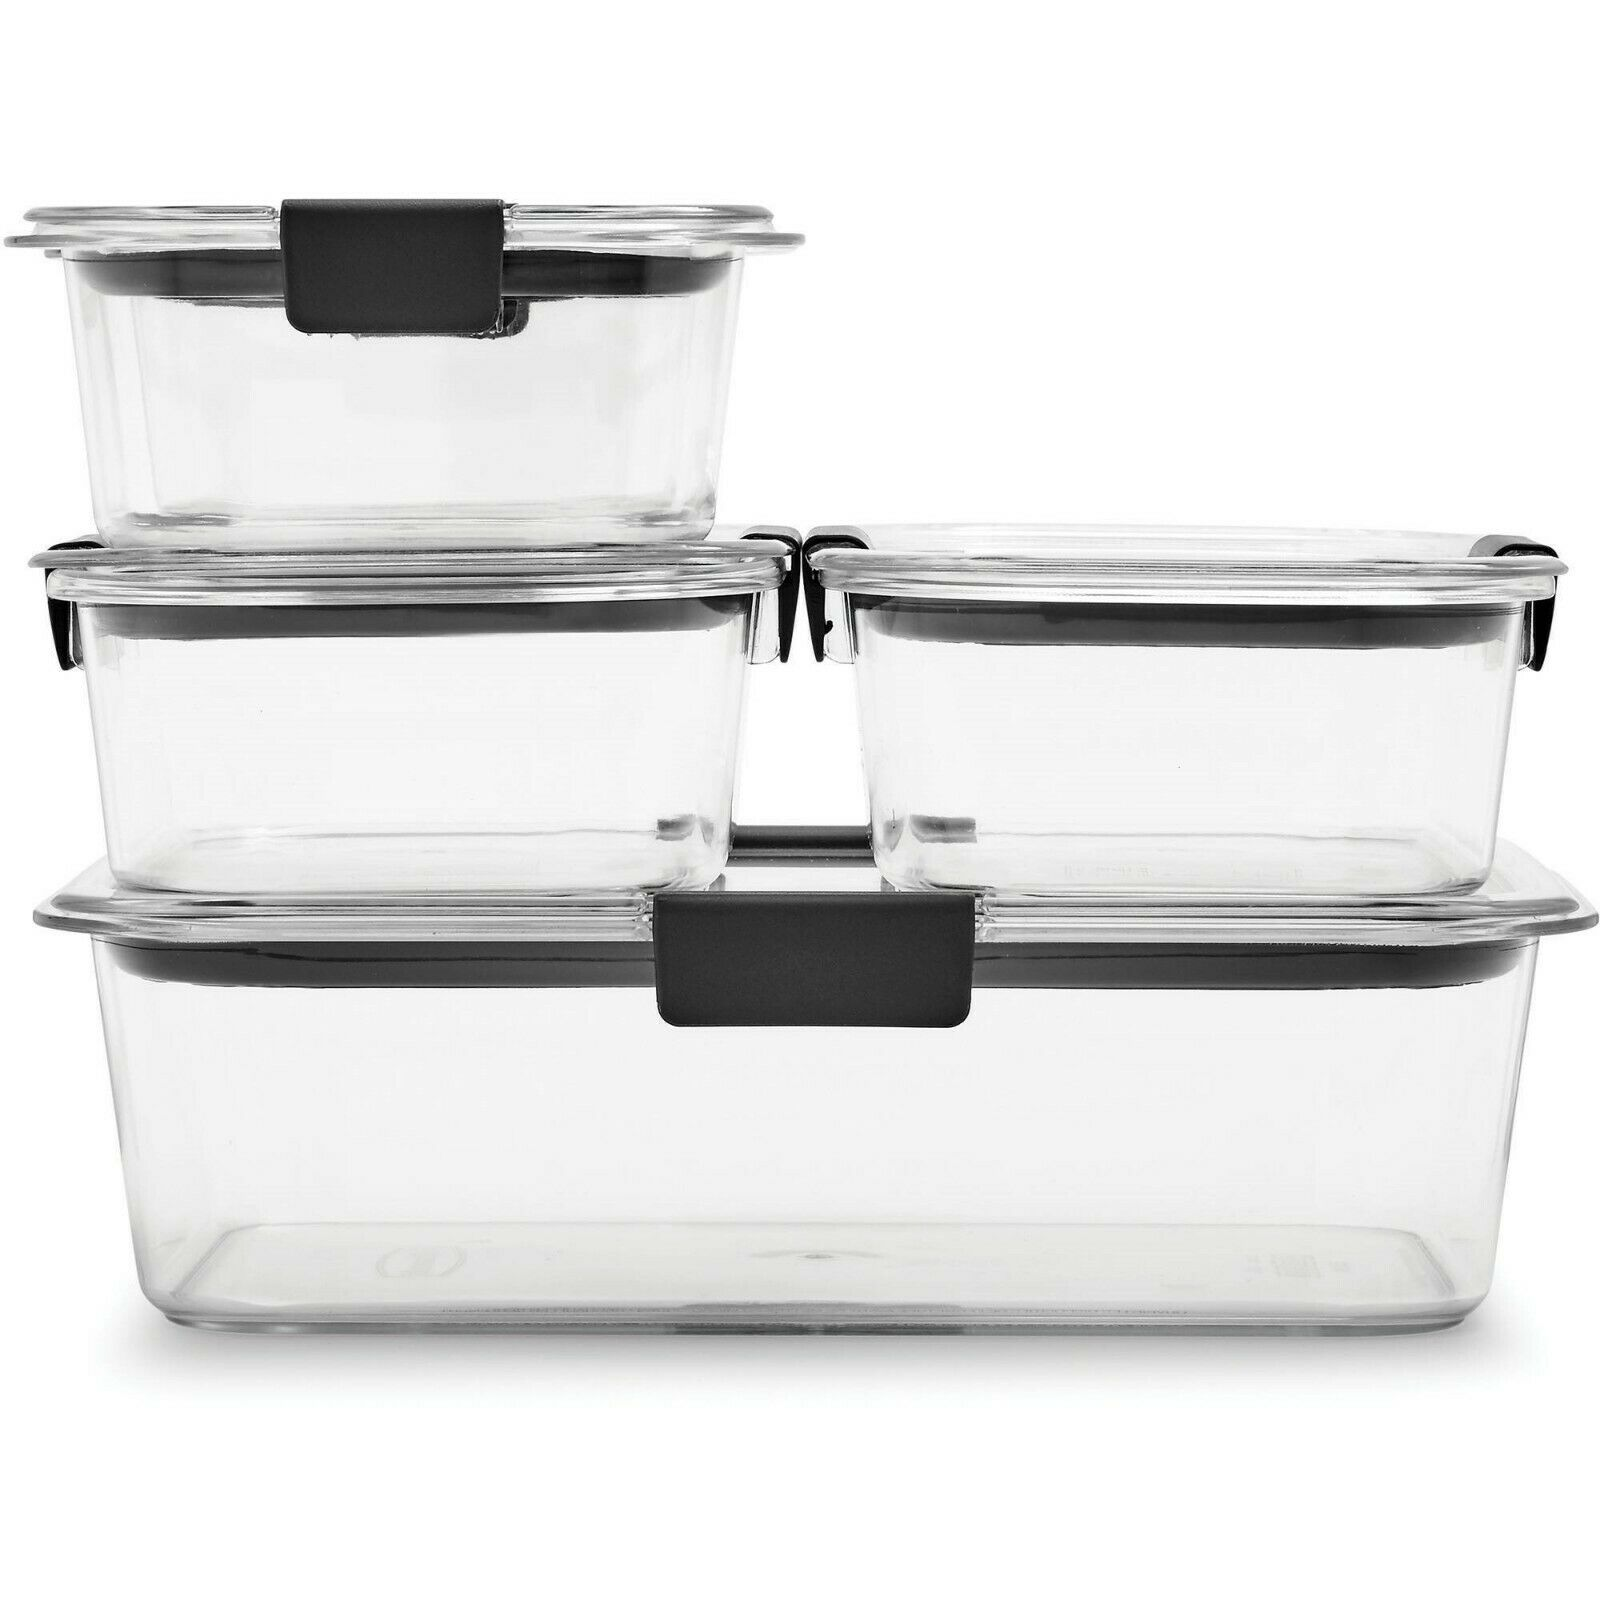 Rubbermaid Brilliance Leak-Proof Food Storage Containers with Airtight Lids NEW 1